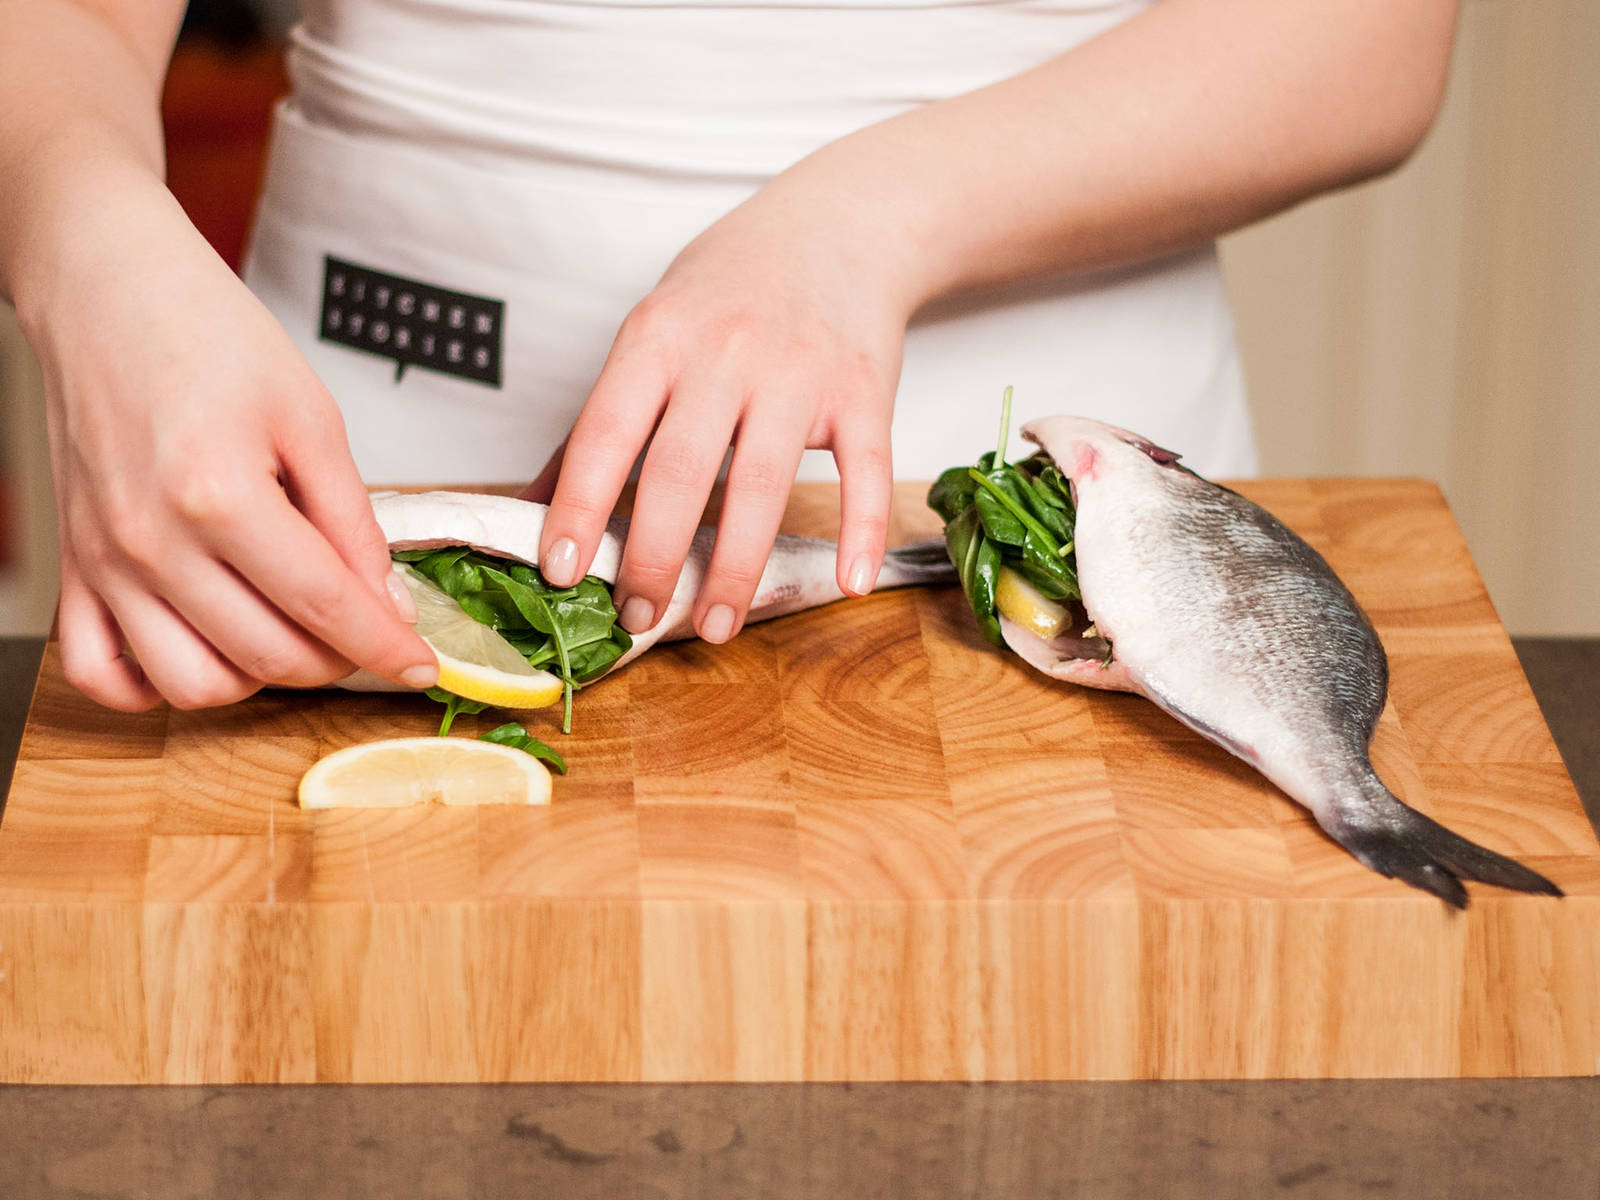 Remove fins and generously season the cavity with sea salt. Fill each gilthead with a crushed garlic clove, thyme, rosemary, baby spinach and a few slices of lemon.